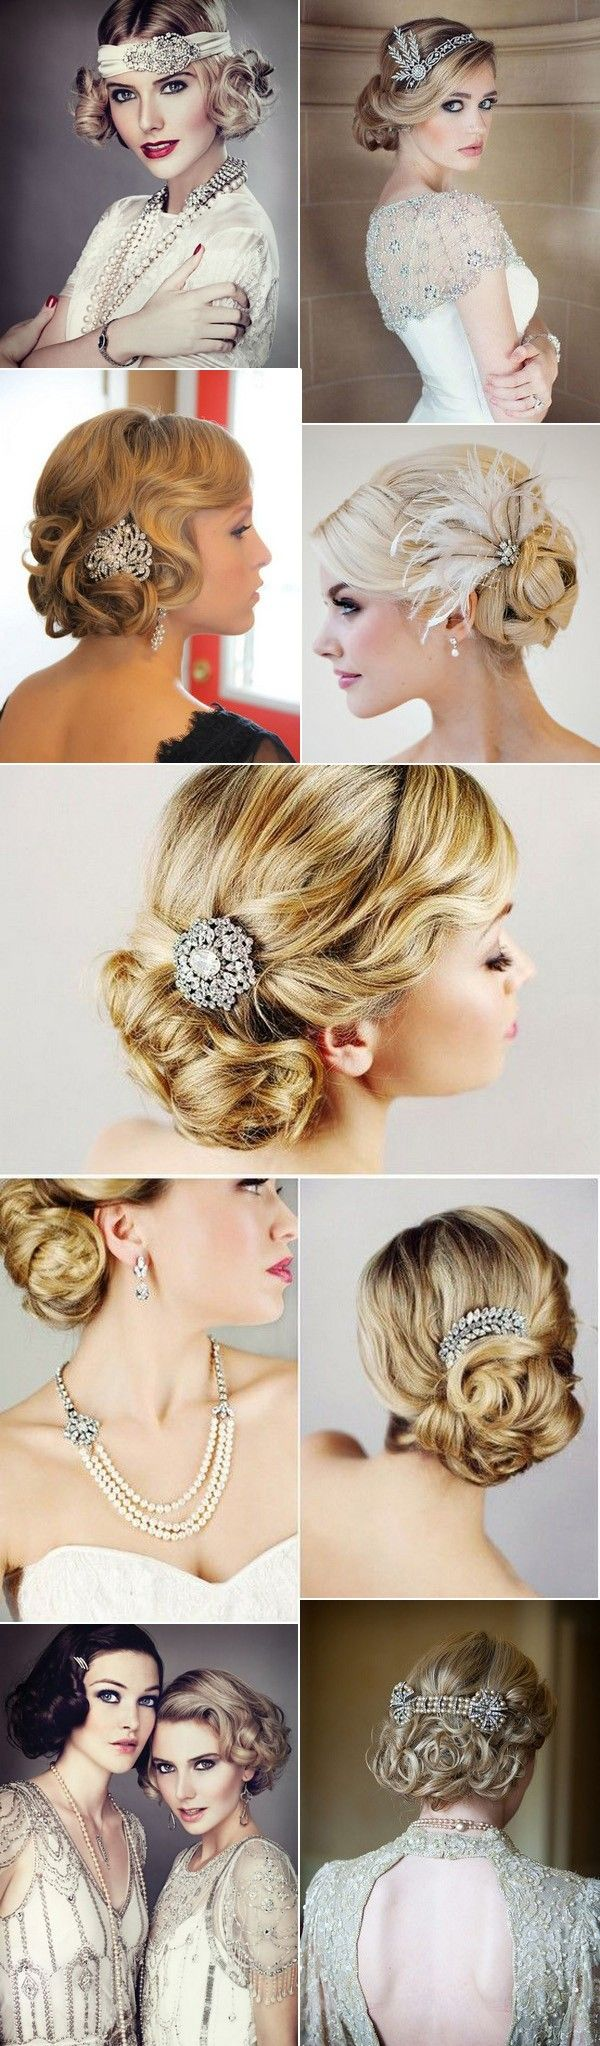 vintage great gatsby themed wedding hairstyles